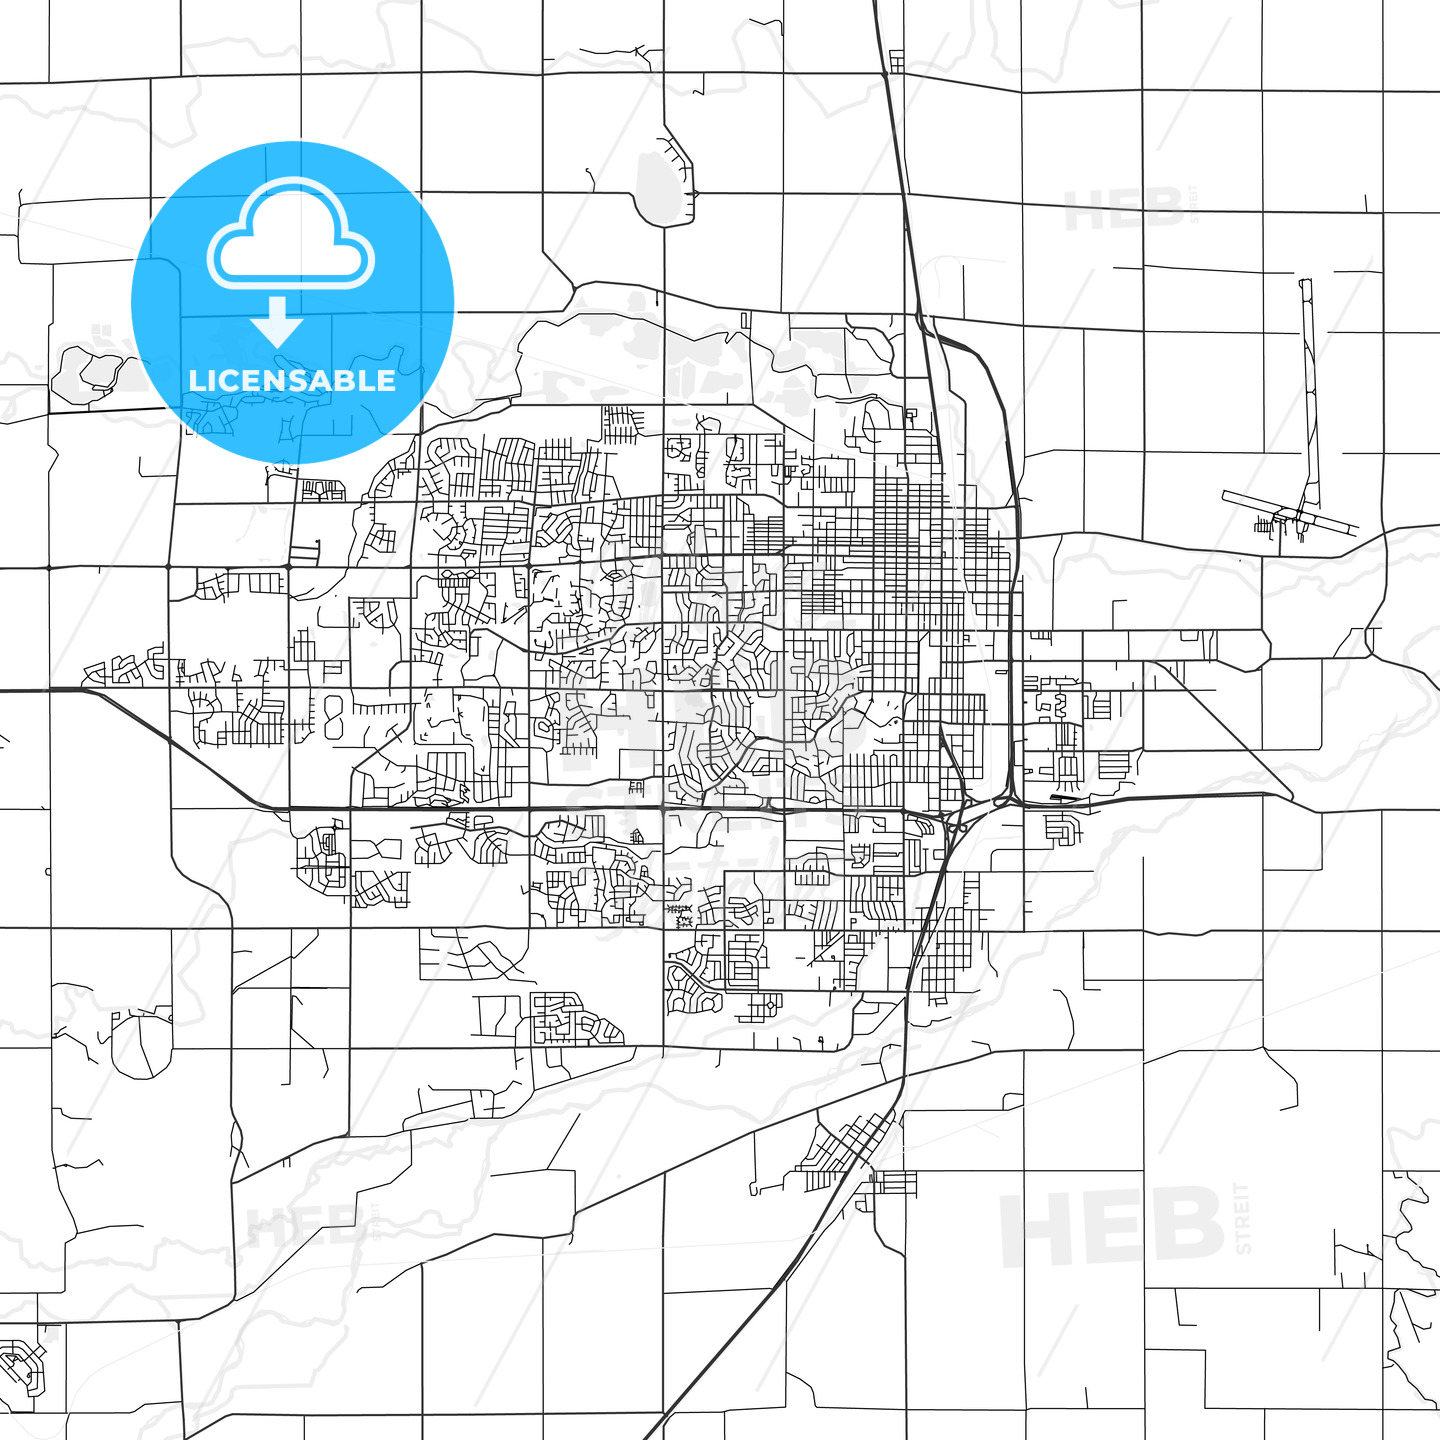 Greeley Map Fairfield Map Greeley Colorado 40chtv   U S MAPS as well Greeley  CO Potion   Census 2010 and 2000 Interactive Map likewise Preliminary geologic map of the Greeley 1 degree x 2 degree besides Neighborhoods   Keep Greeley Moving moreover map of Colorado cities   Born In The U S A    The West   Pinterest additionally Greeley  Colorado   Area Map   Light   HEBSTREITS further Maps  Watch oil and gas wells spread across Colorado   CPR as well Greeley CO Metro MSA Map   Maps in addition  also Greeley Colorado Zip Code Wall Map  Basic Style  by MarketMAPS further Greeley Colorado Usa Map   Marinatower org in addition Greeley Map Greeley Co 0832155 Gif Landsat   U S MAPS also  moreover Fort Collins   Greeley  CO Wall Map  Keith Map Service  Inc together with  also Life in Greeley  Colorado   Life Transpla. on map of greeley colorado